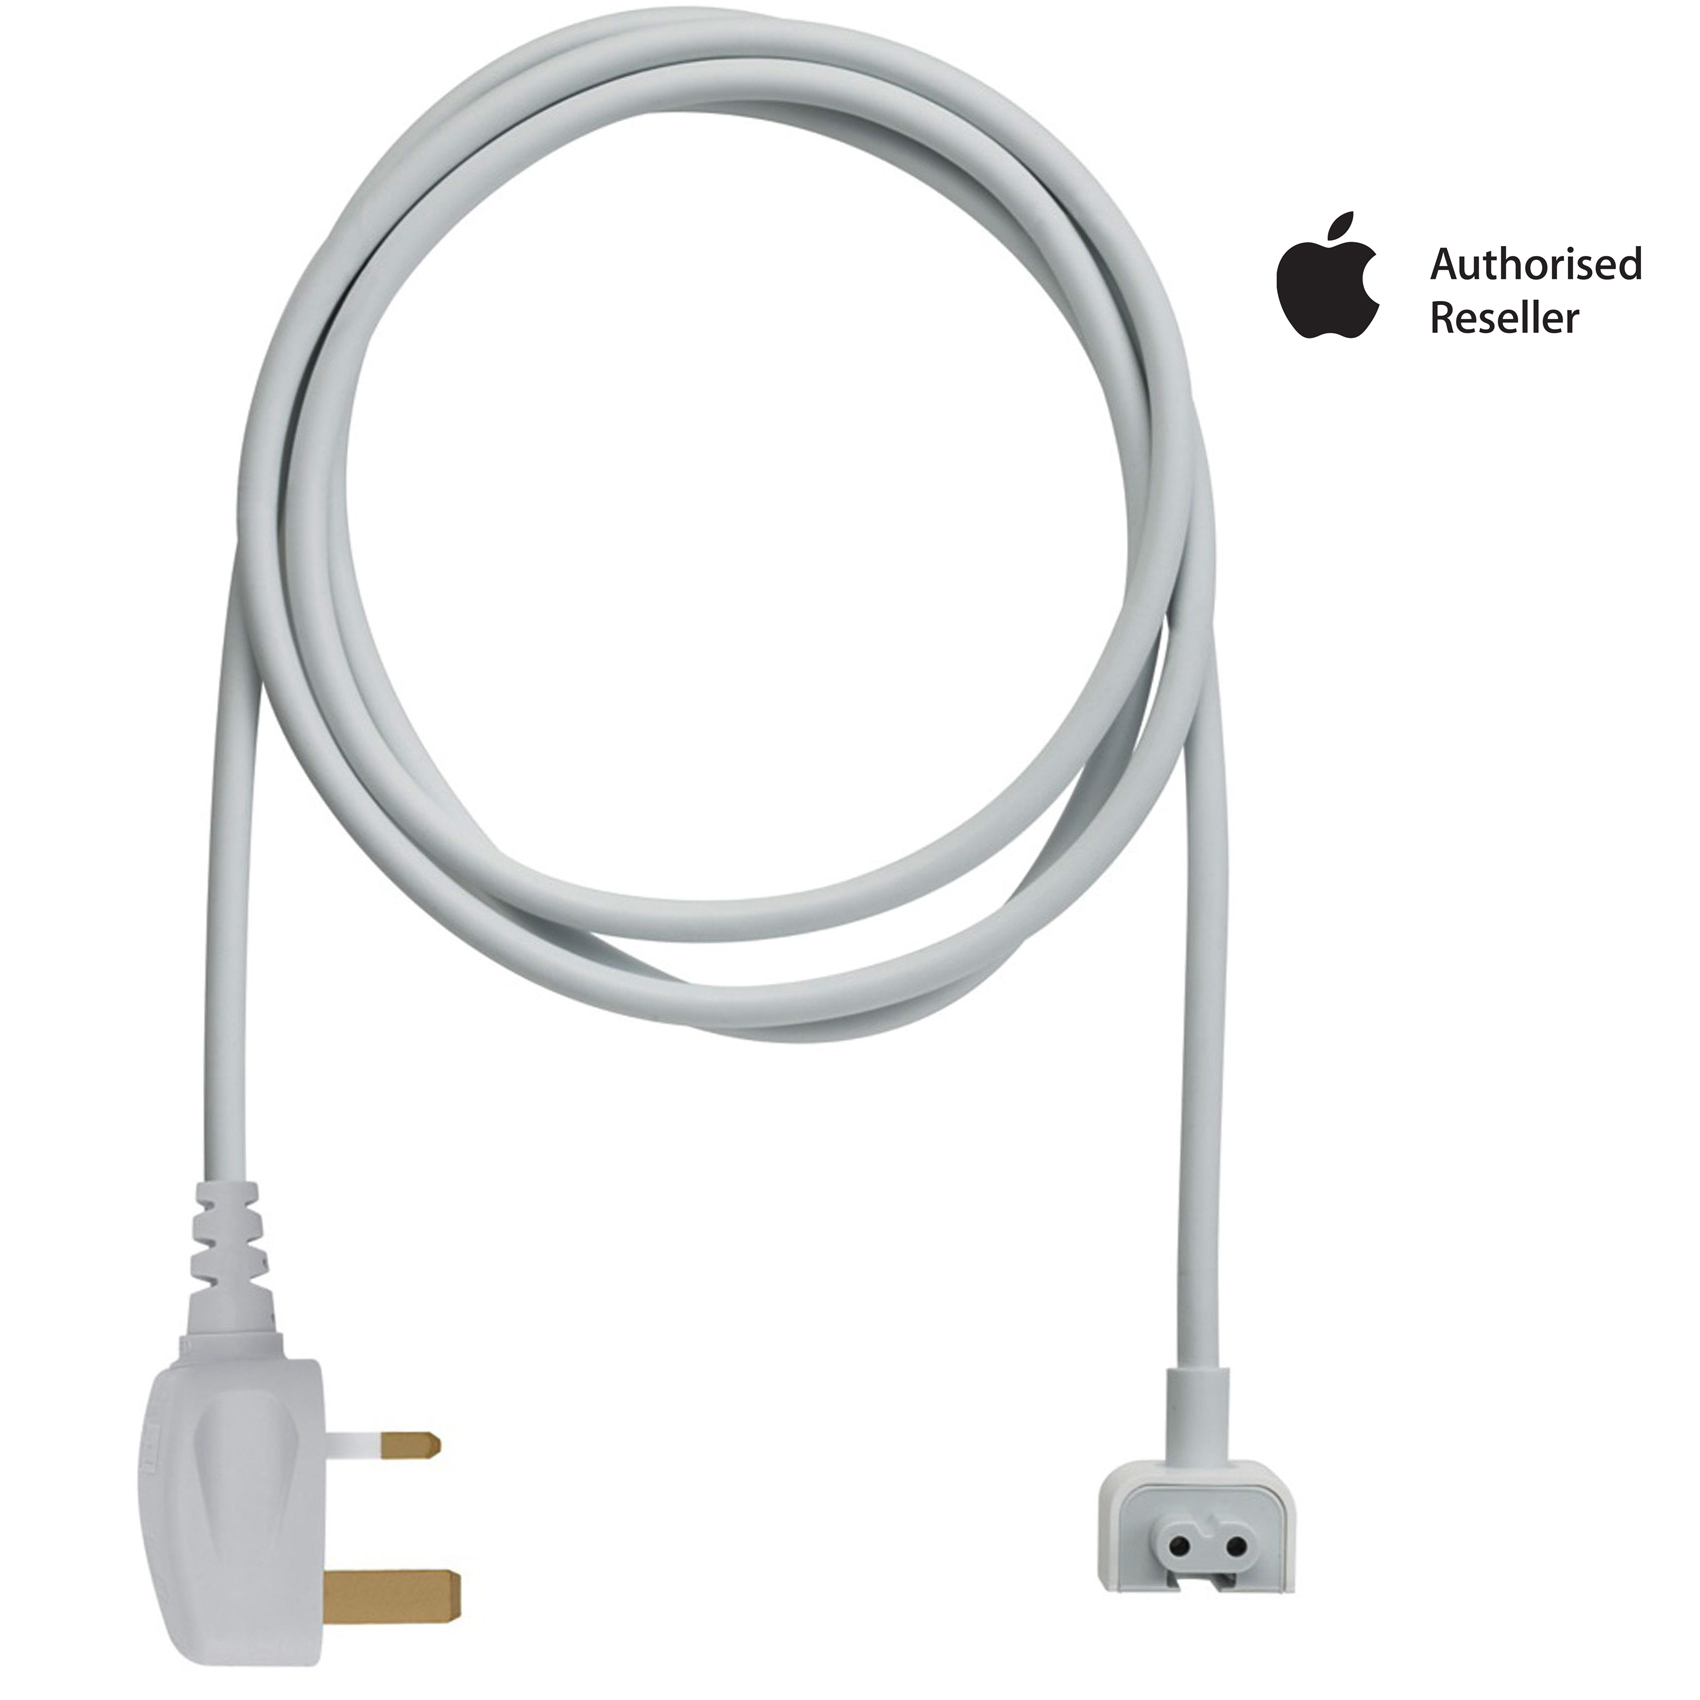 APPLE POWER ADAPTER EXT CABLE UK